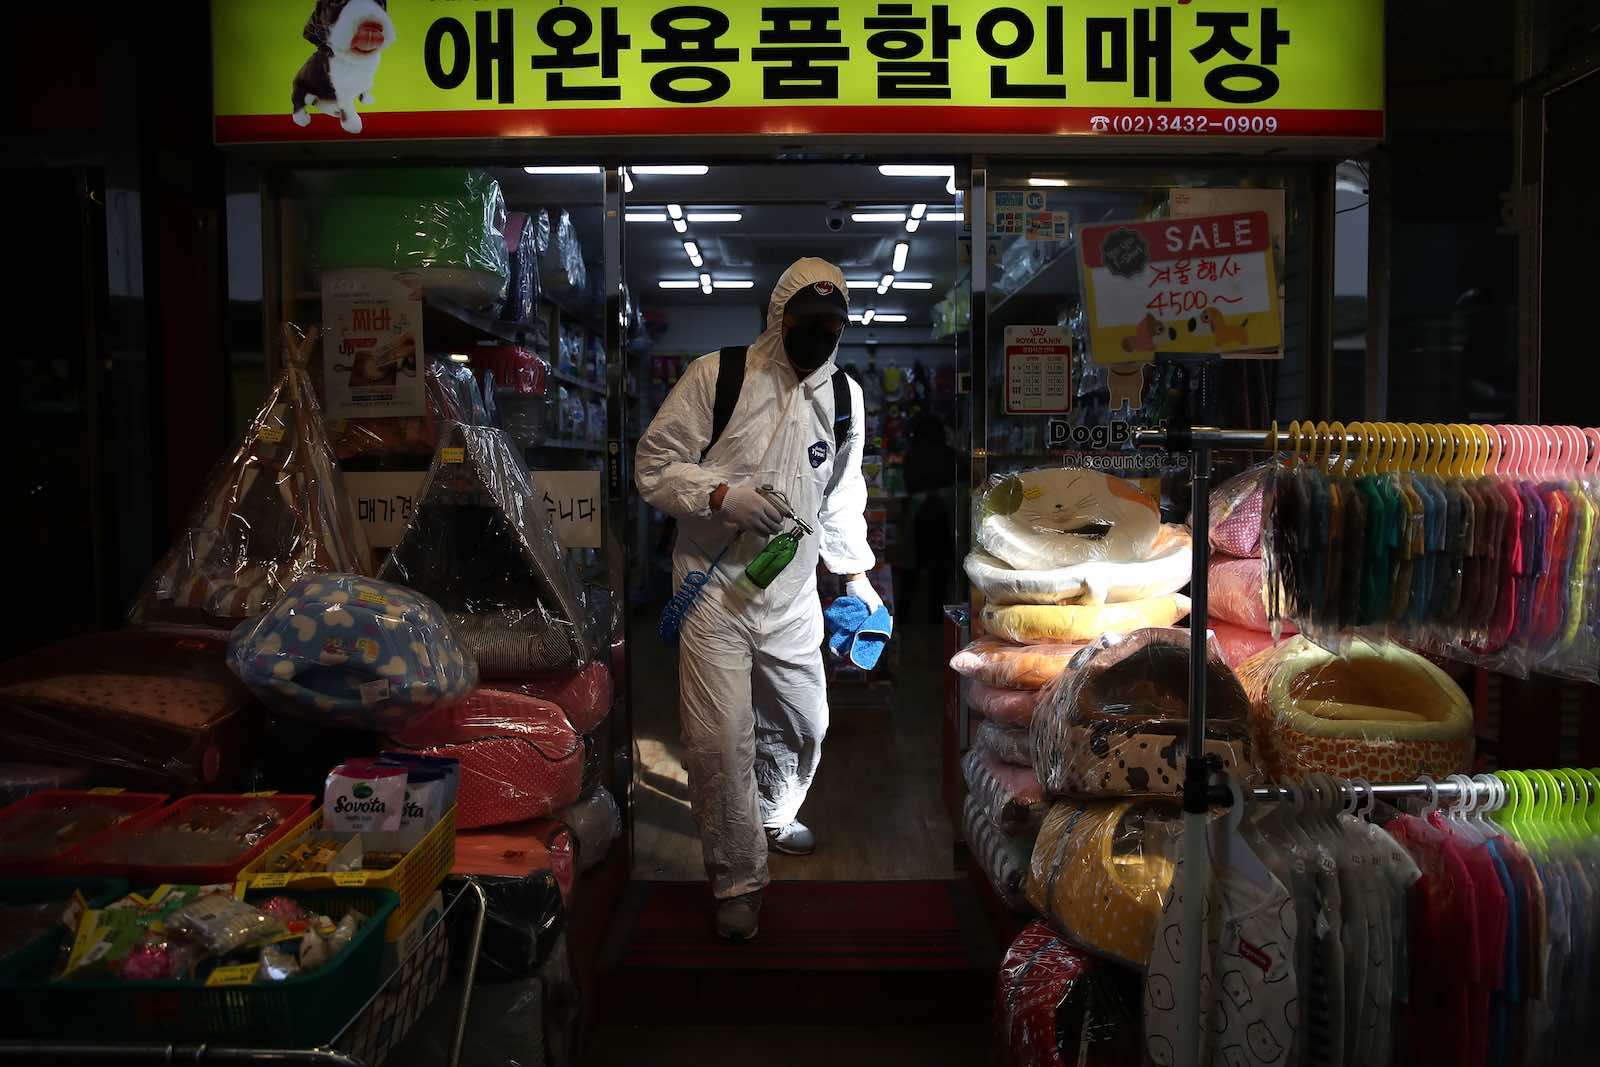 Disinfection against the coronavirus in a Seoul market (Chung Sung-Jun/Getty Images)